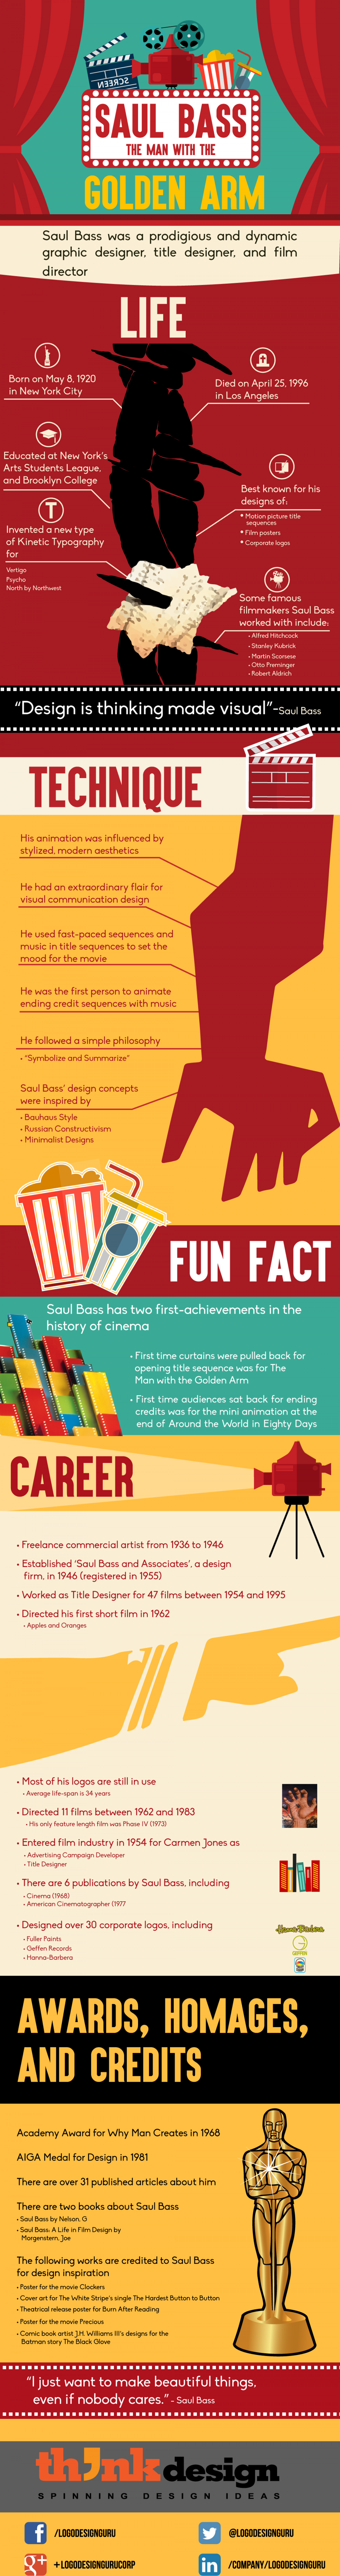 Designer Spotlight: Saul Bass - The Man with the Golden Arm Infographic